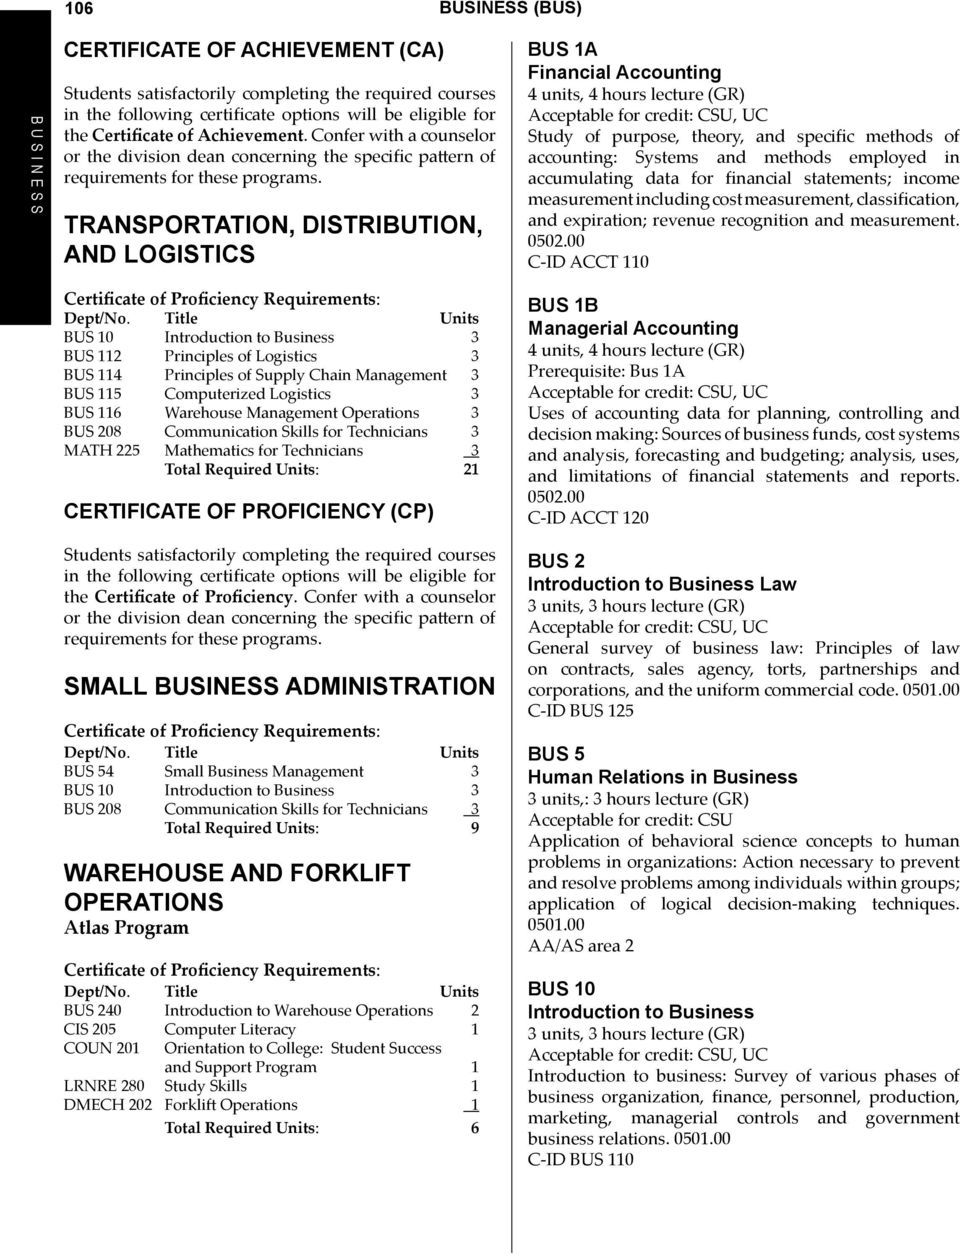 Transportation, Distribution, and LOGISTICS Certificate of Proficiency Requirements: BUS 112 Principles of Logistics 3 BUS 114 Principles of Supply Chain Management 3 BUS 115 Computerized Logistics 3